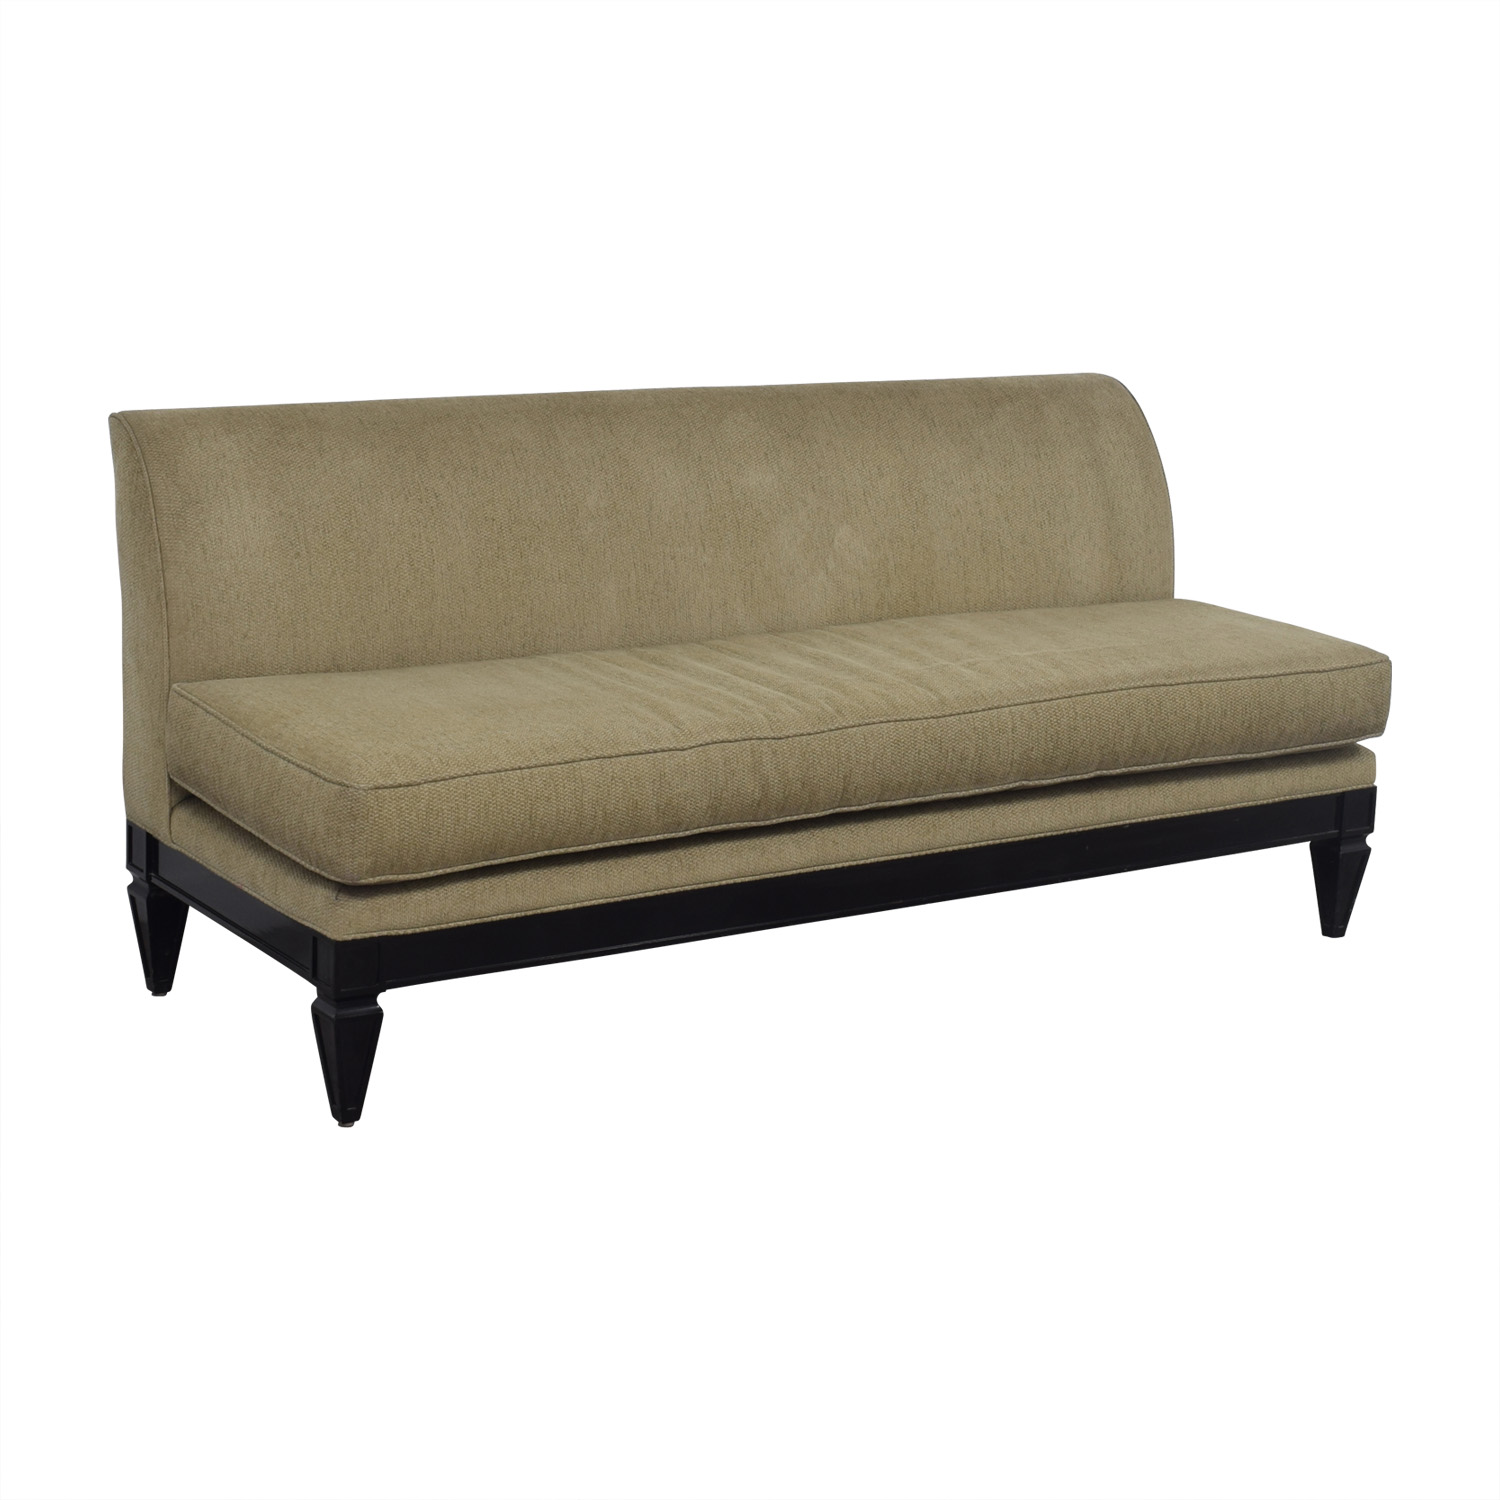 ... Todd Hase Todd Hase Tan Single Cushion Couch Coupon ...